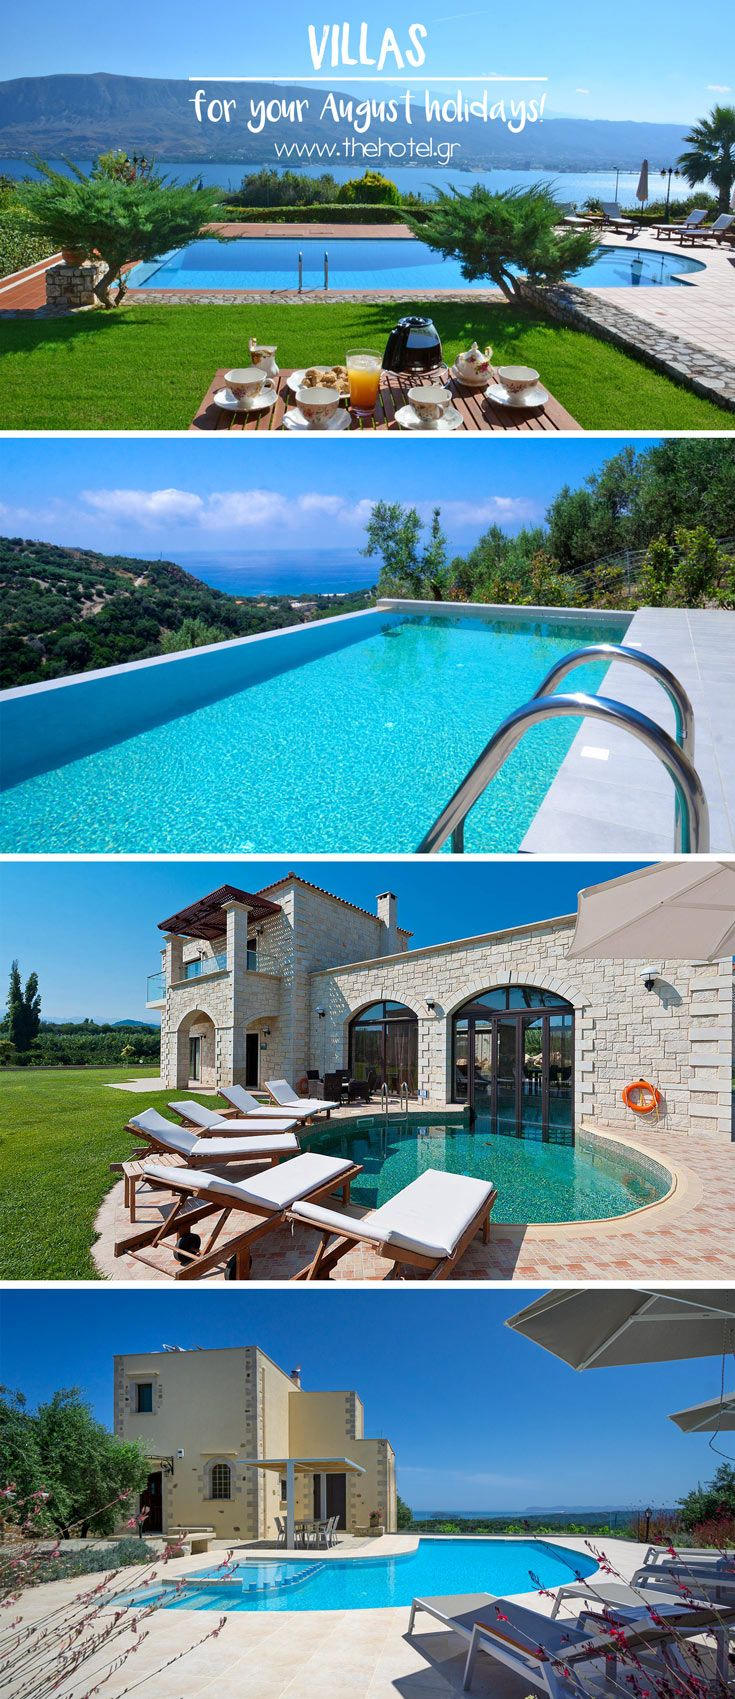 Holidays Villas Amazing Villas In Crete For Your August Holiday Travel